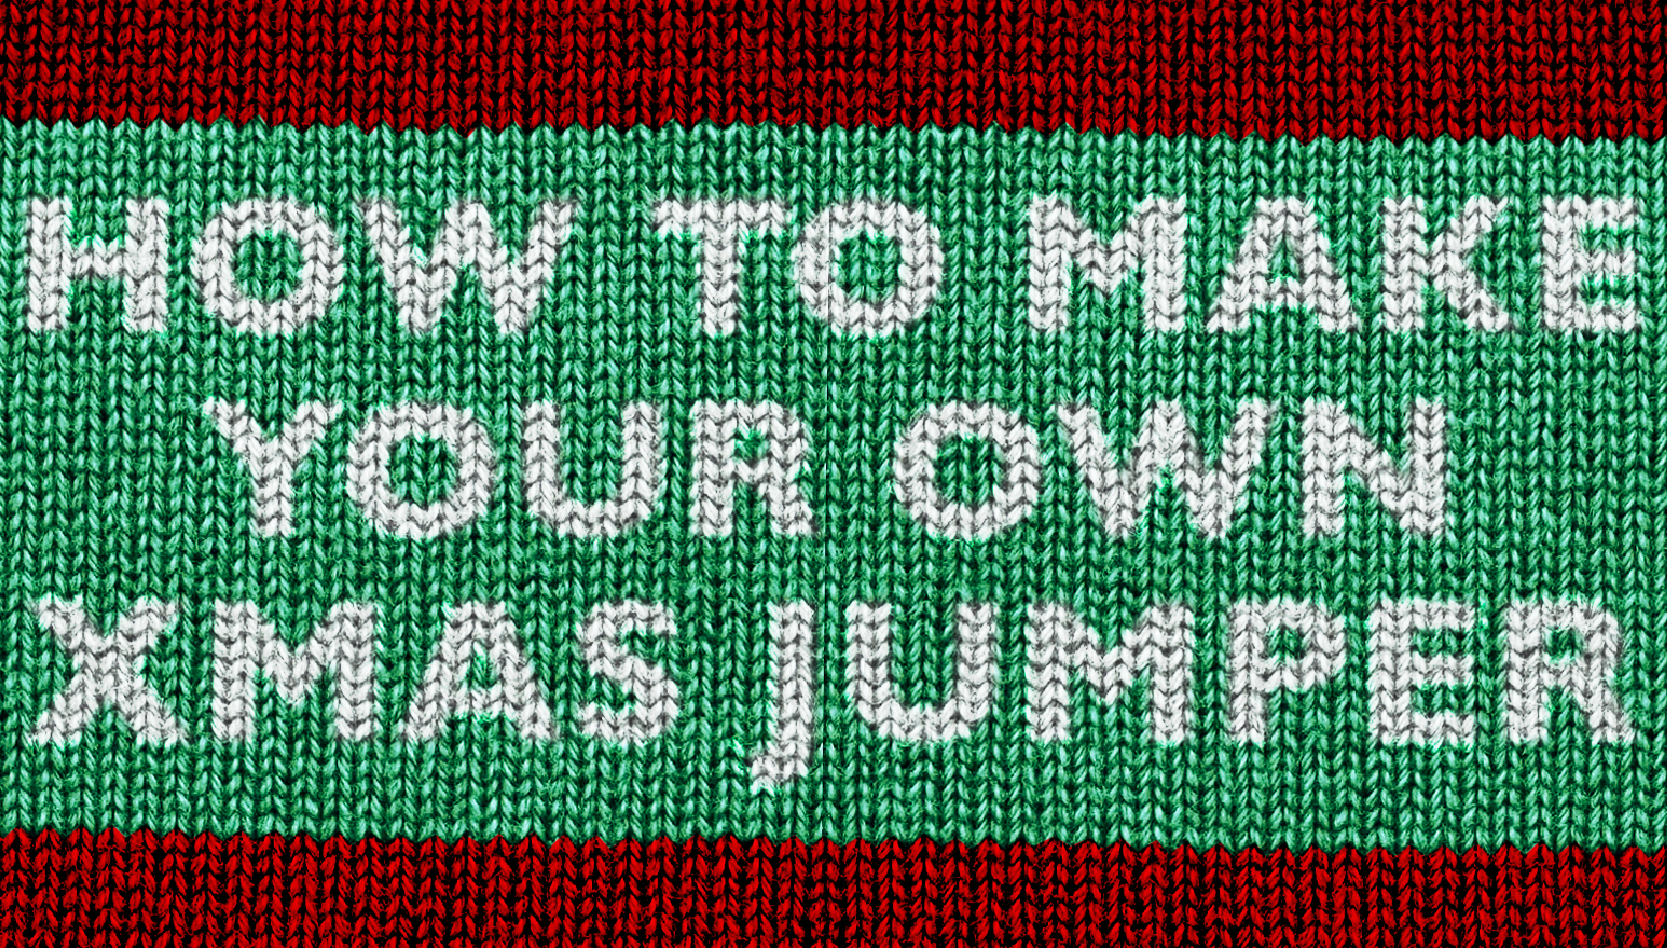 How To Make Your Own Xmas Jumper